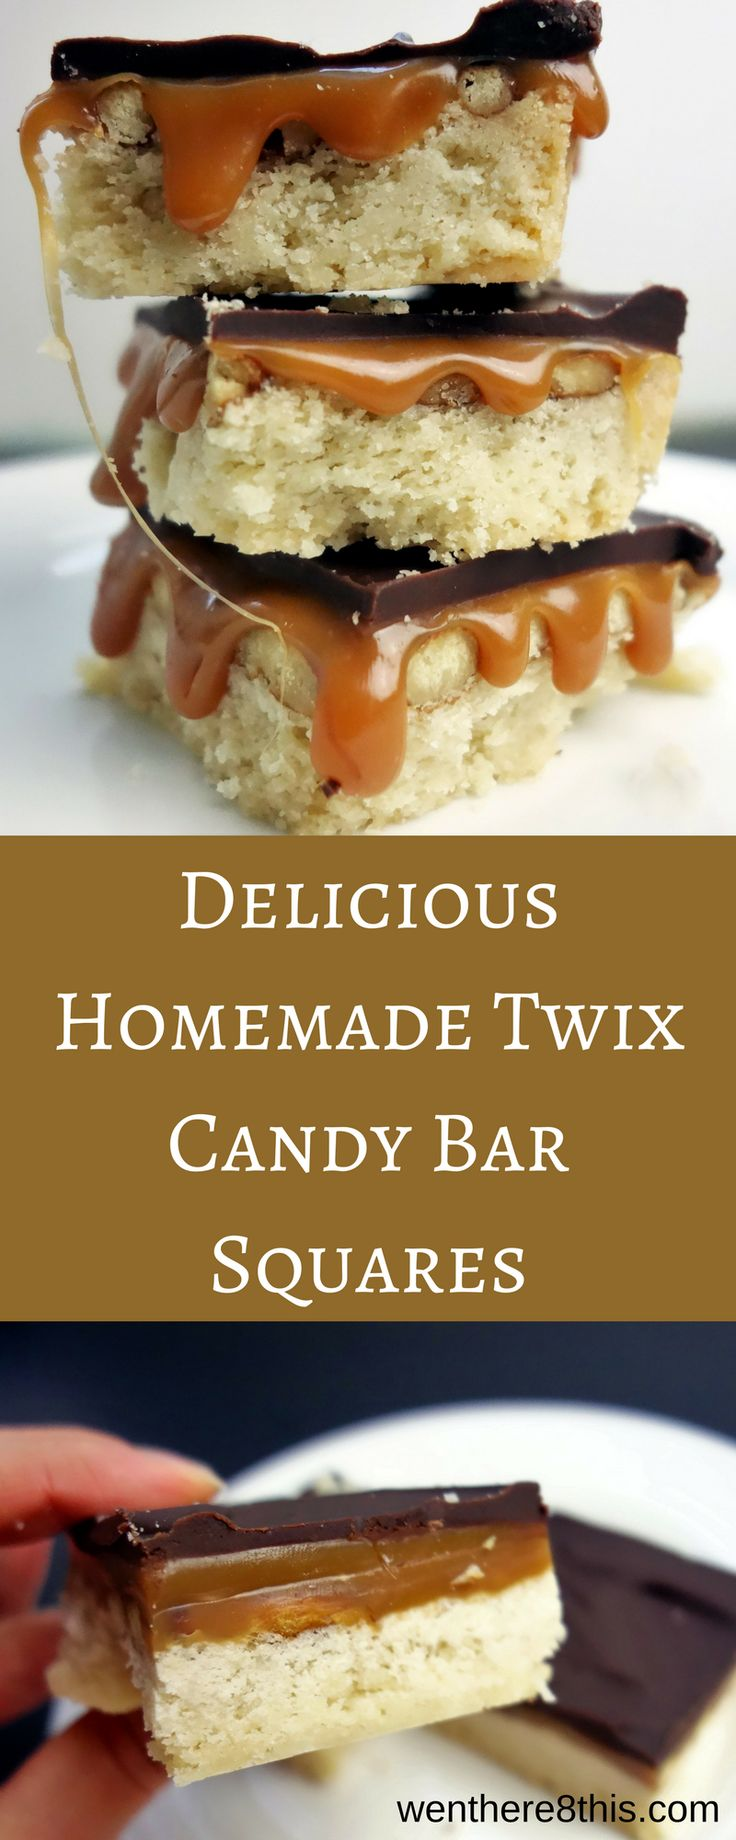 The most amazing Homemade Twix Candy Bar Squares homemade candy bars, candy bar recipes, shortbread recipes, twix candy bar recipes, millionaire shortbread recipes, caramel desserts, chocolate desserts, homemade twix bars easy, homemade twix bars recipes